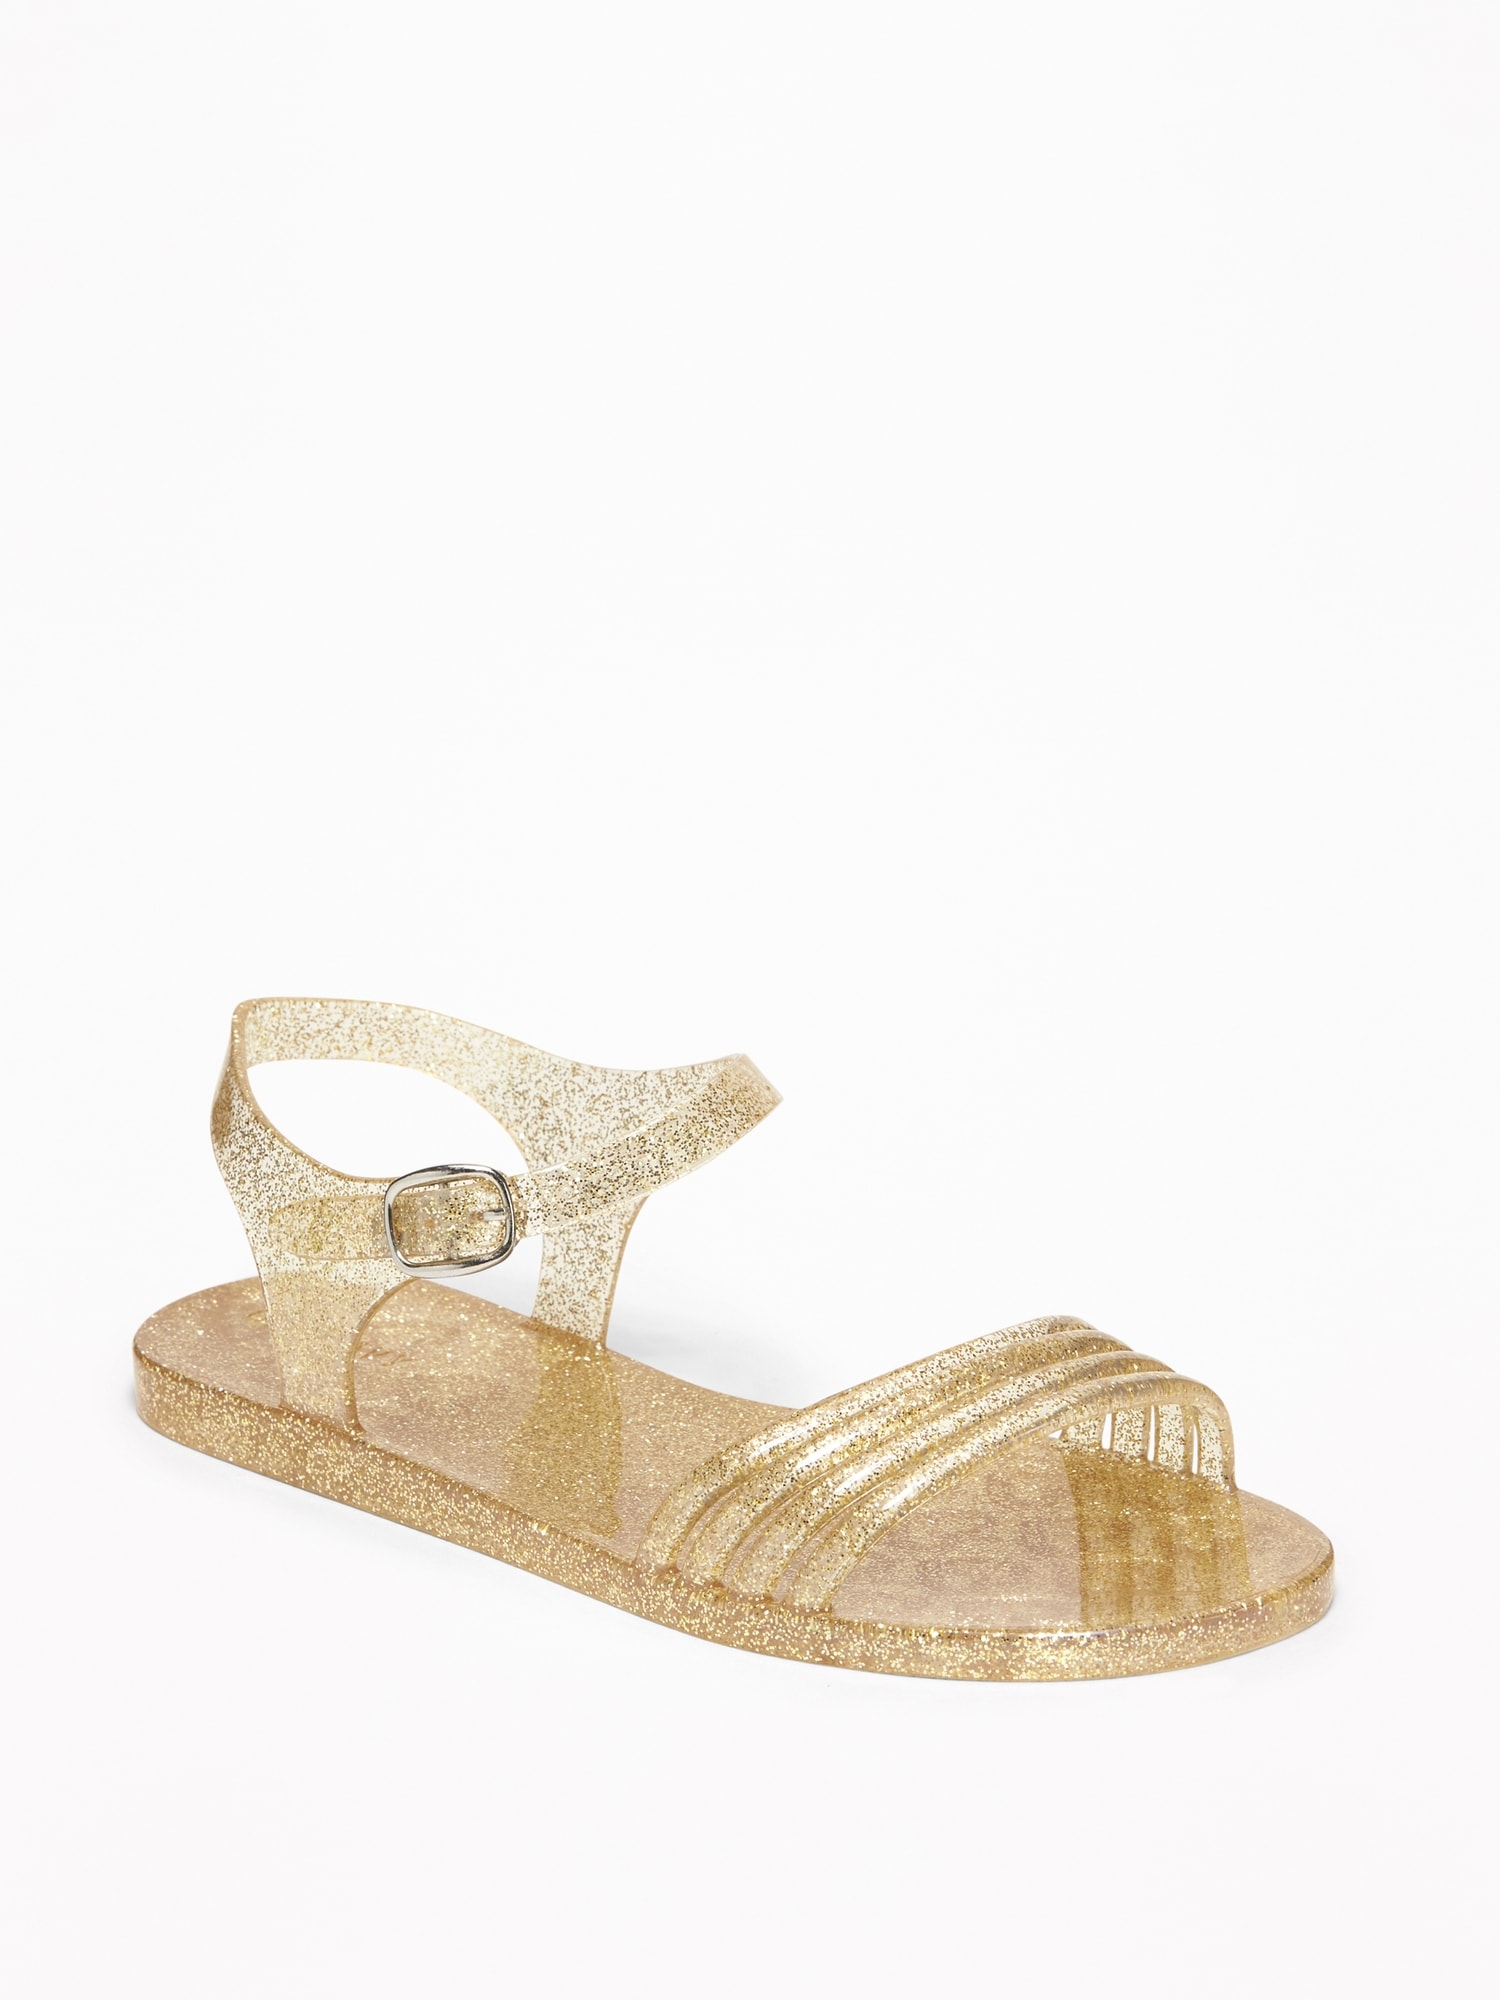 a1f2a4f11ff0 Strappy Glitter Jelly Sandals for Girls